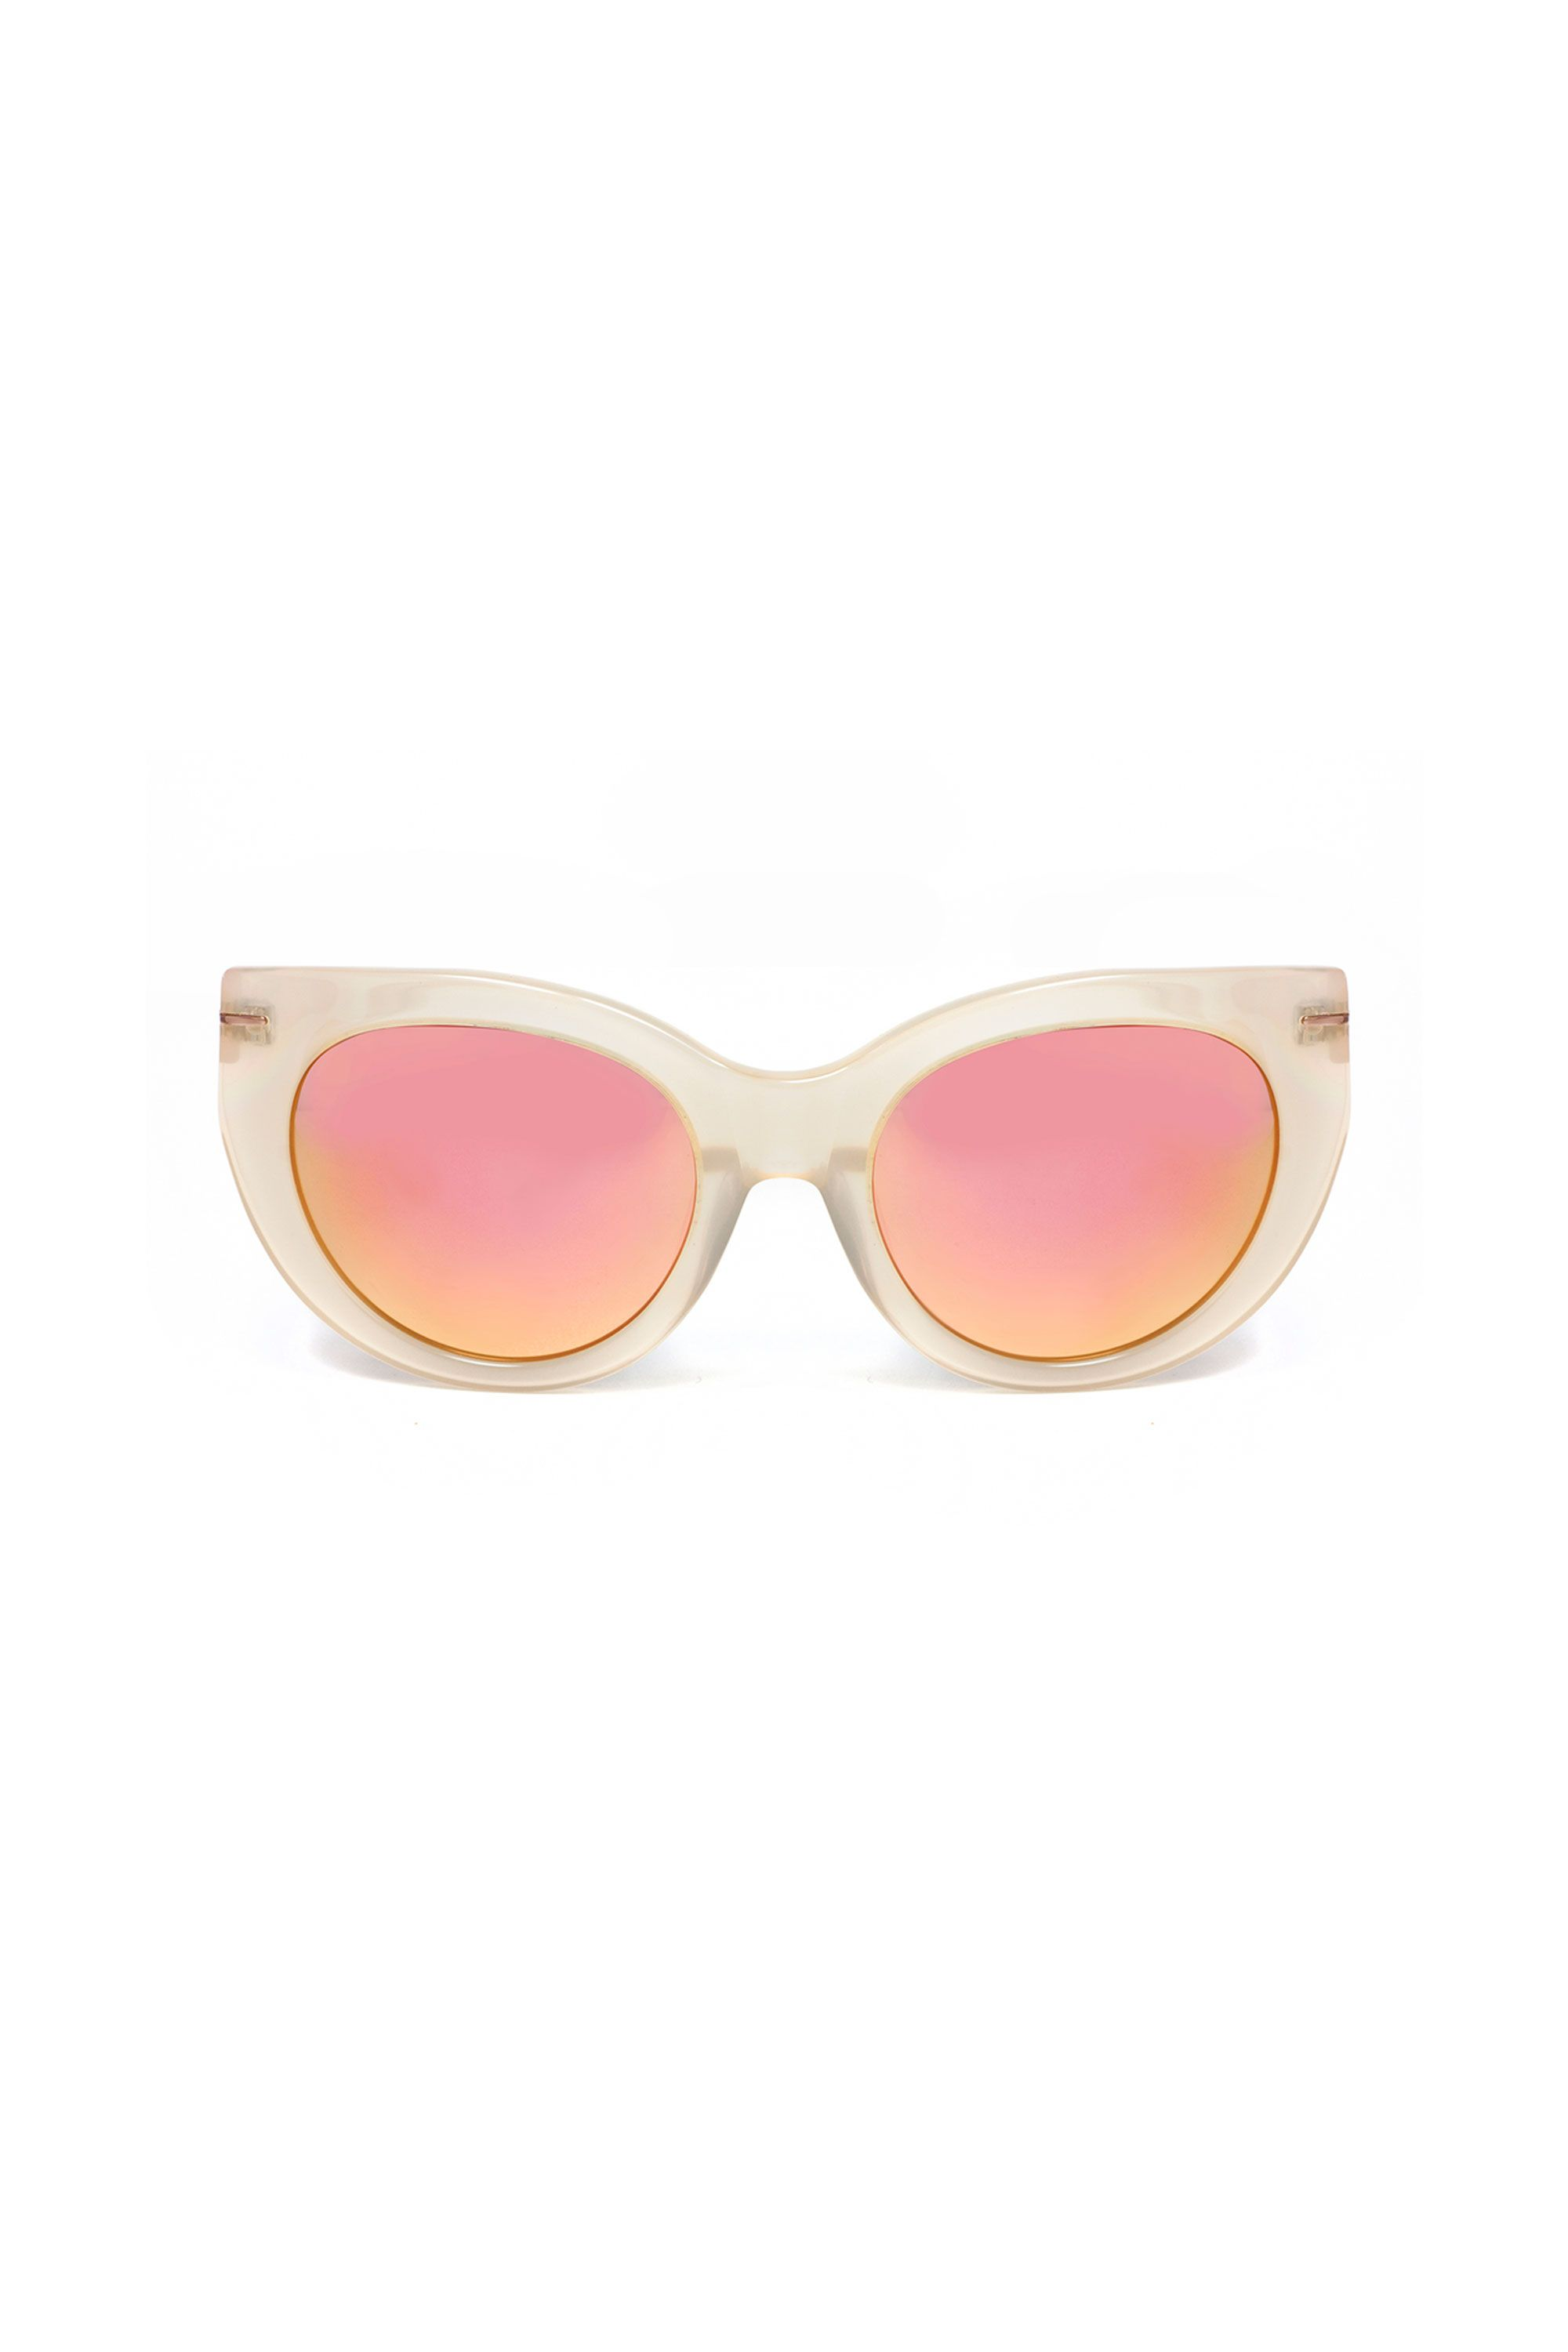 "<p>Foolish are those who forget sunnies for an outside ceremony. Pack yours or forever hold your peace.</p><p><em data-redactor-tag=""em"" data-verified=""redactor"">Hadid Eyewear Sunglasses, $149; </em><a href=""https://hadideyewear.com/collections/all/products/runway-nude"" target=""_blank"" data-tracking-id=""recirc-text-link""><em data-redactor-tag=""em"" data-verified=""redactor"">hadideyewear.com</em></a> </p>"